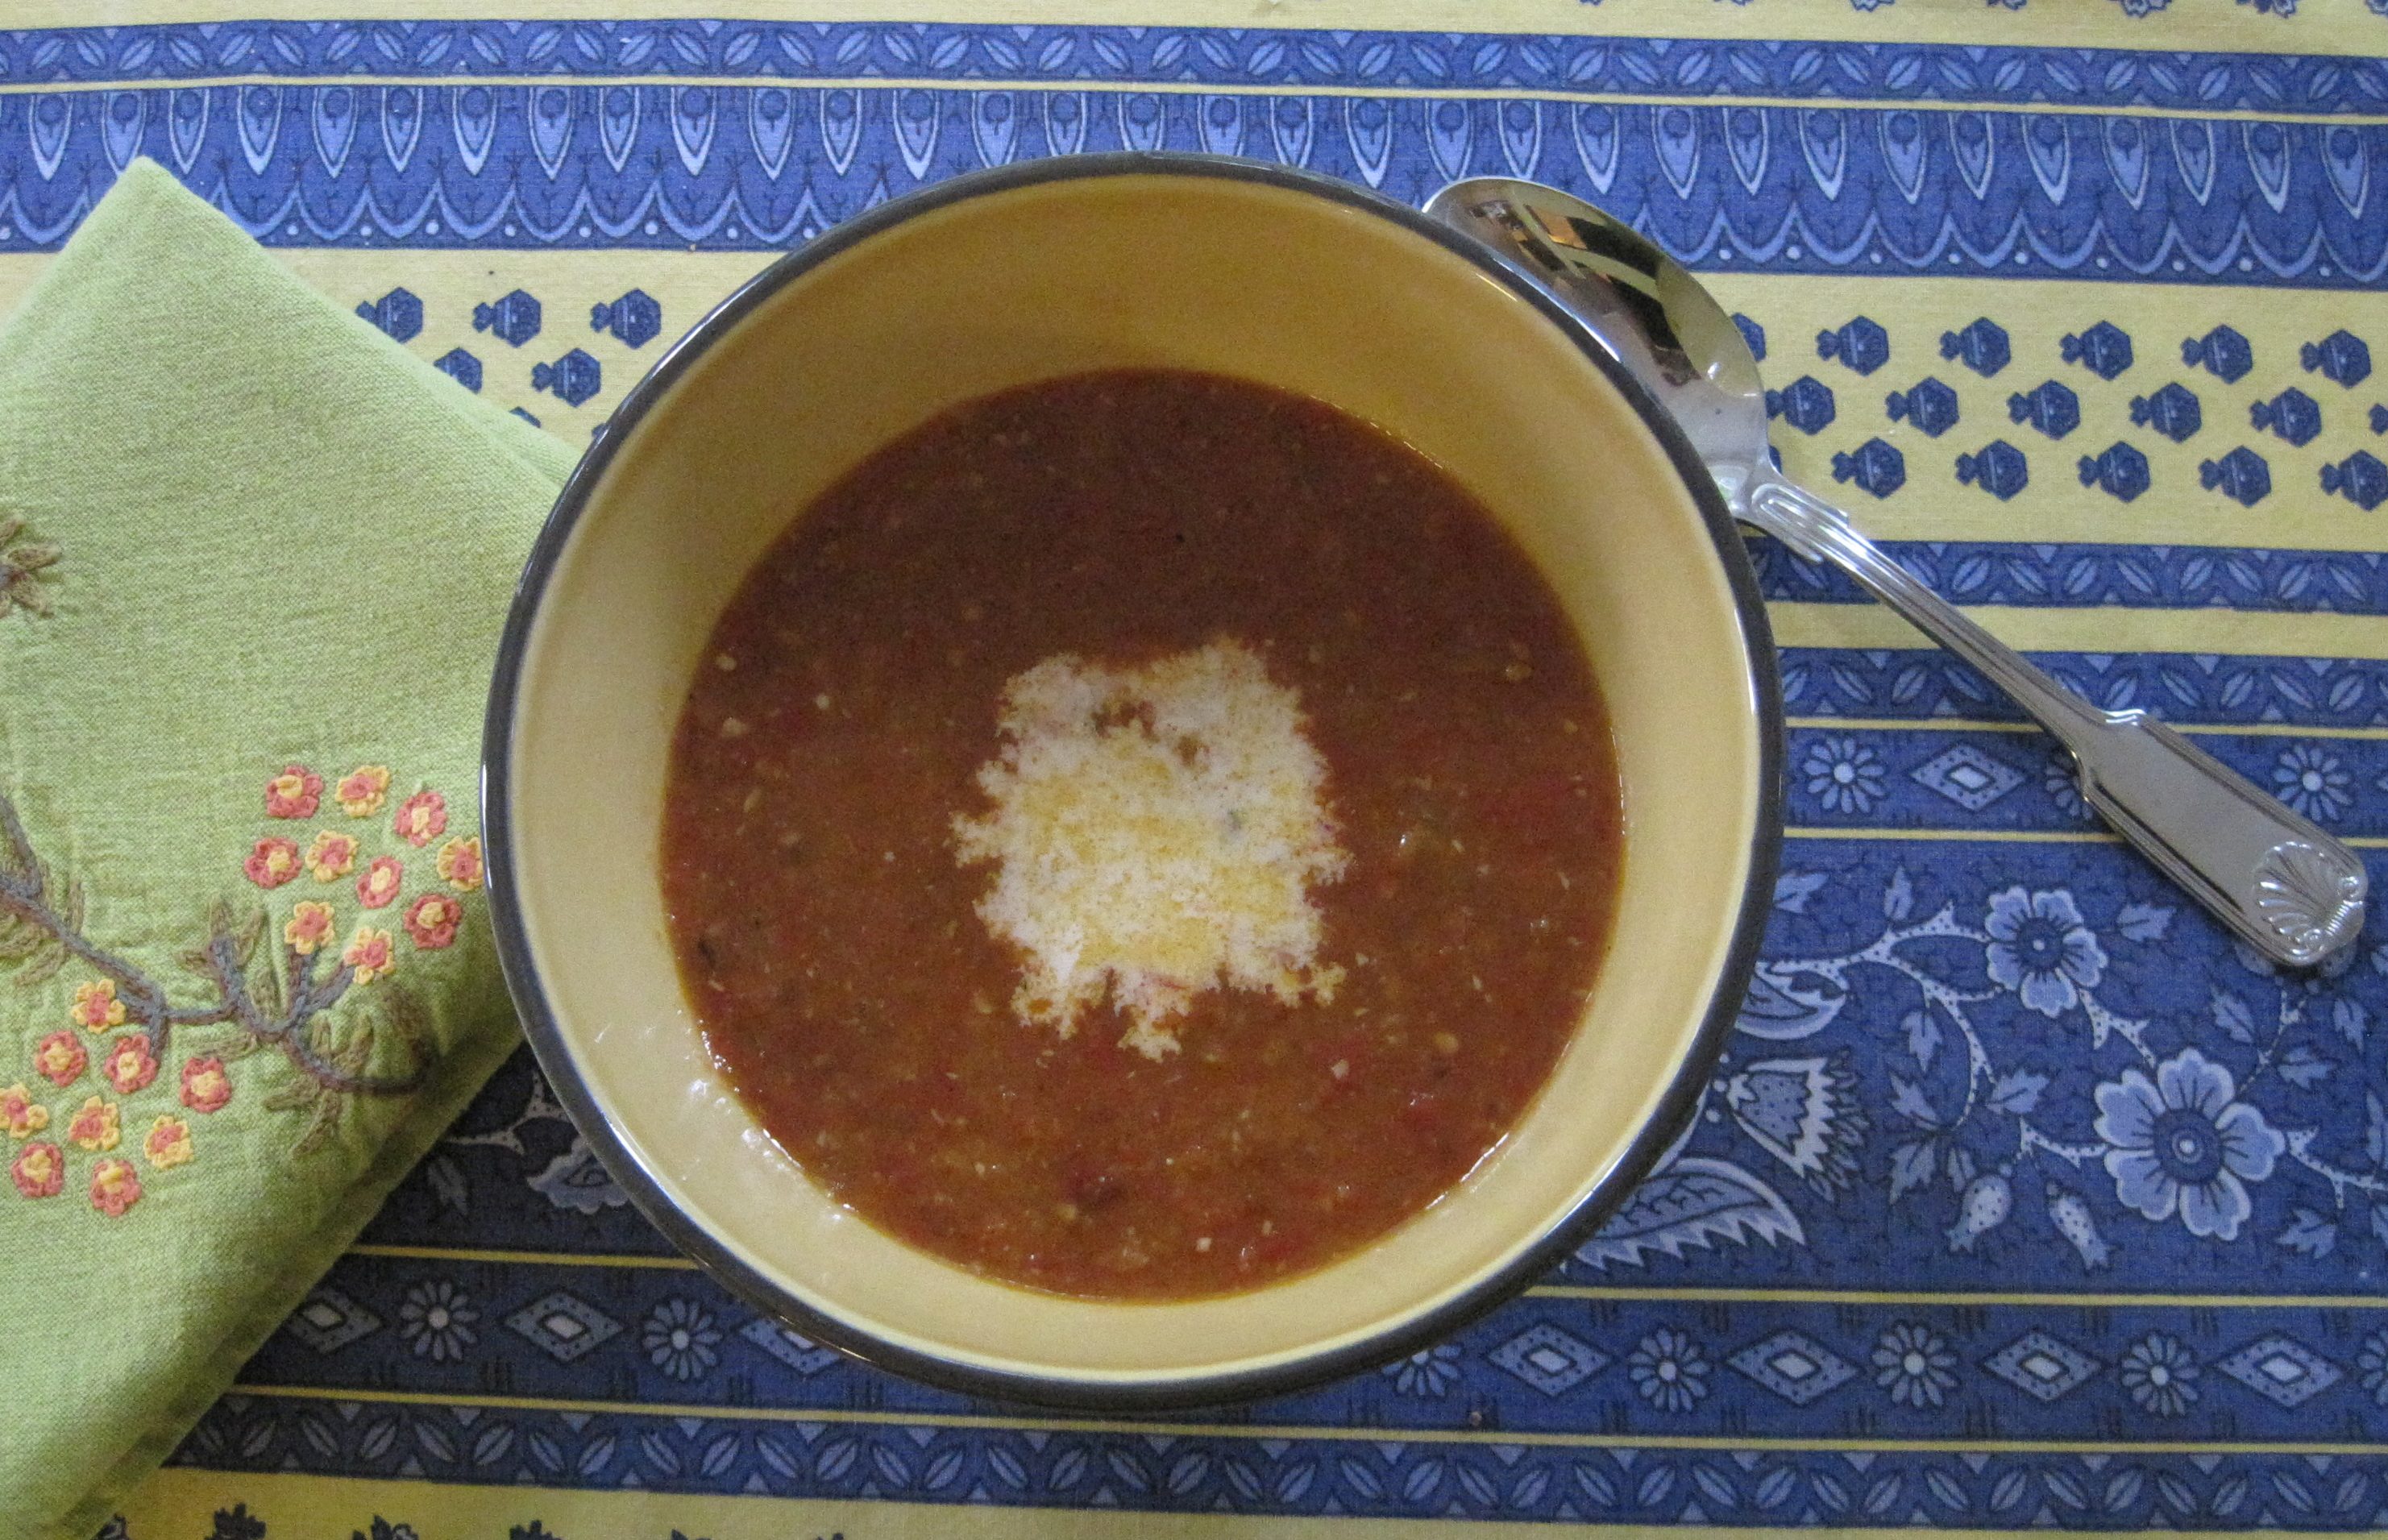 Roasted Heirloom Tomato Soup